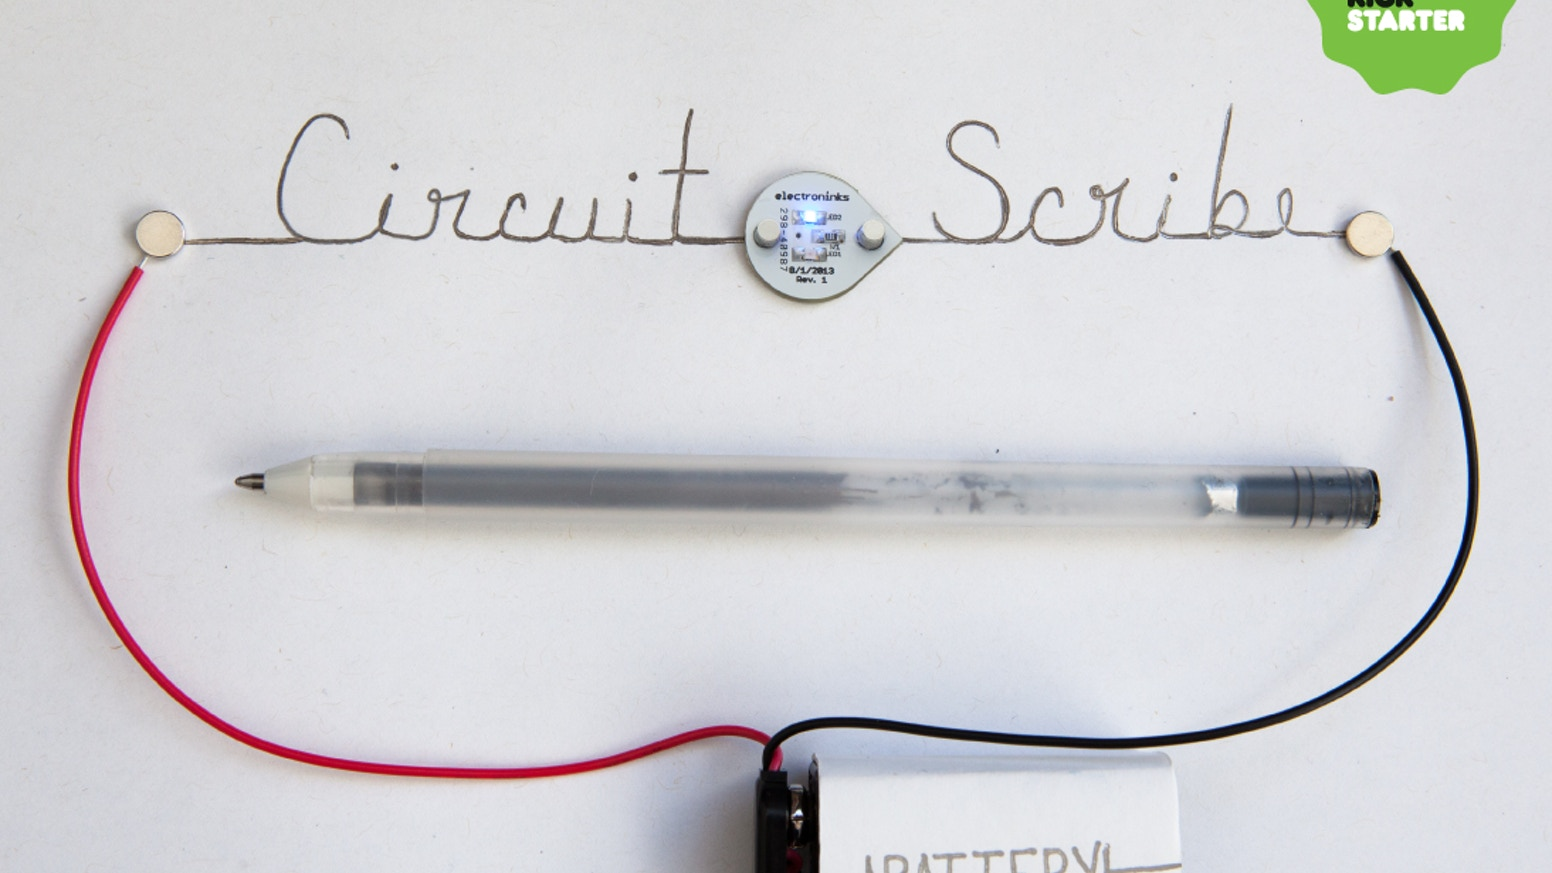 Circuit Scribe Draw Circuits Instantly By Electroninks Incorporated Software For Electronic Design Is A Rollerball Pen That Writes With Conductive Silver Ink It Makes Creating